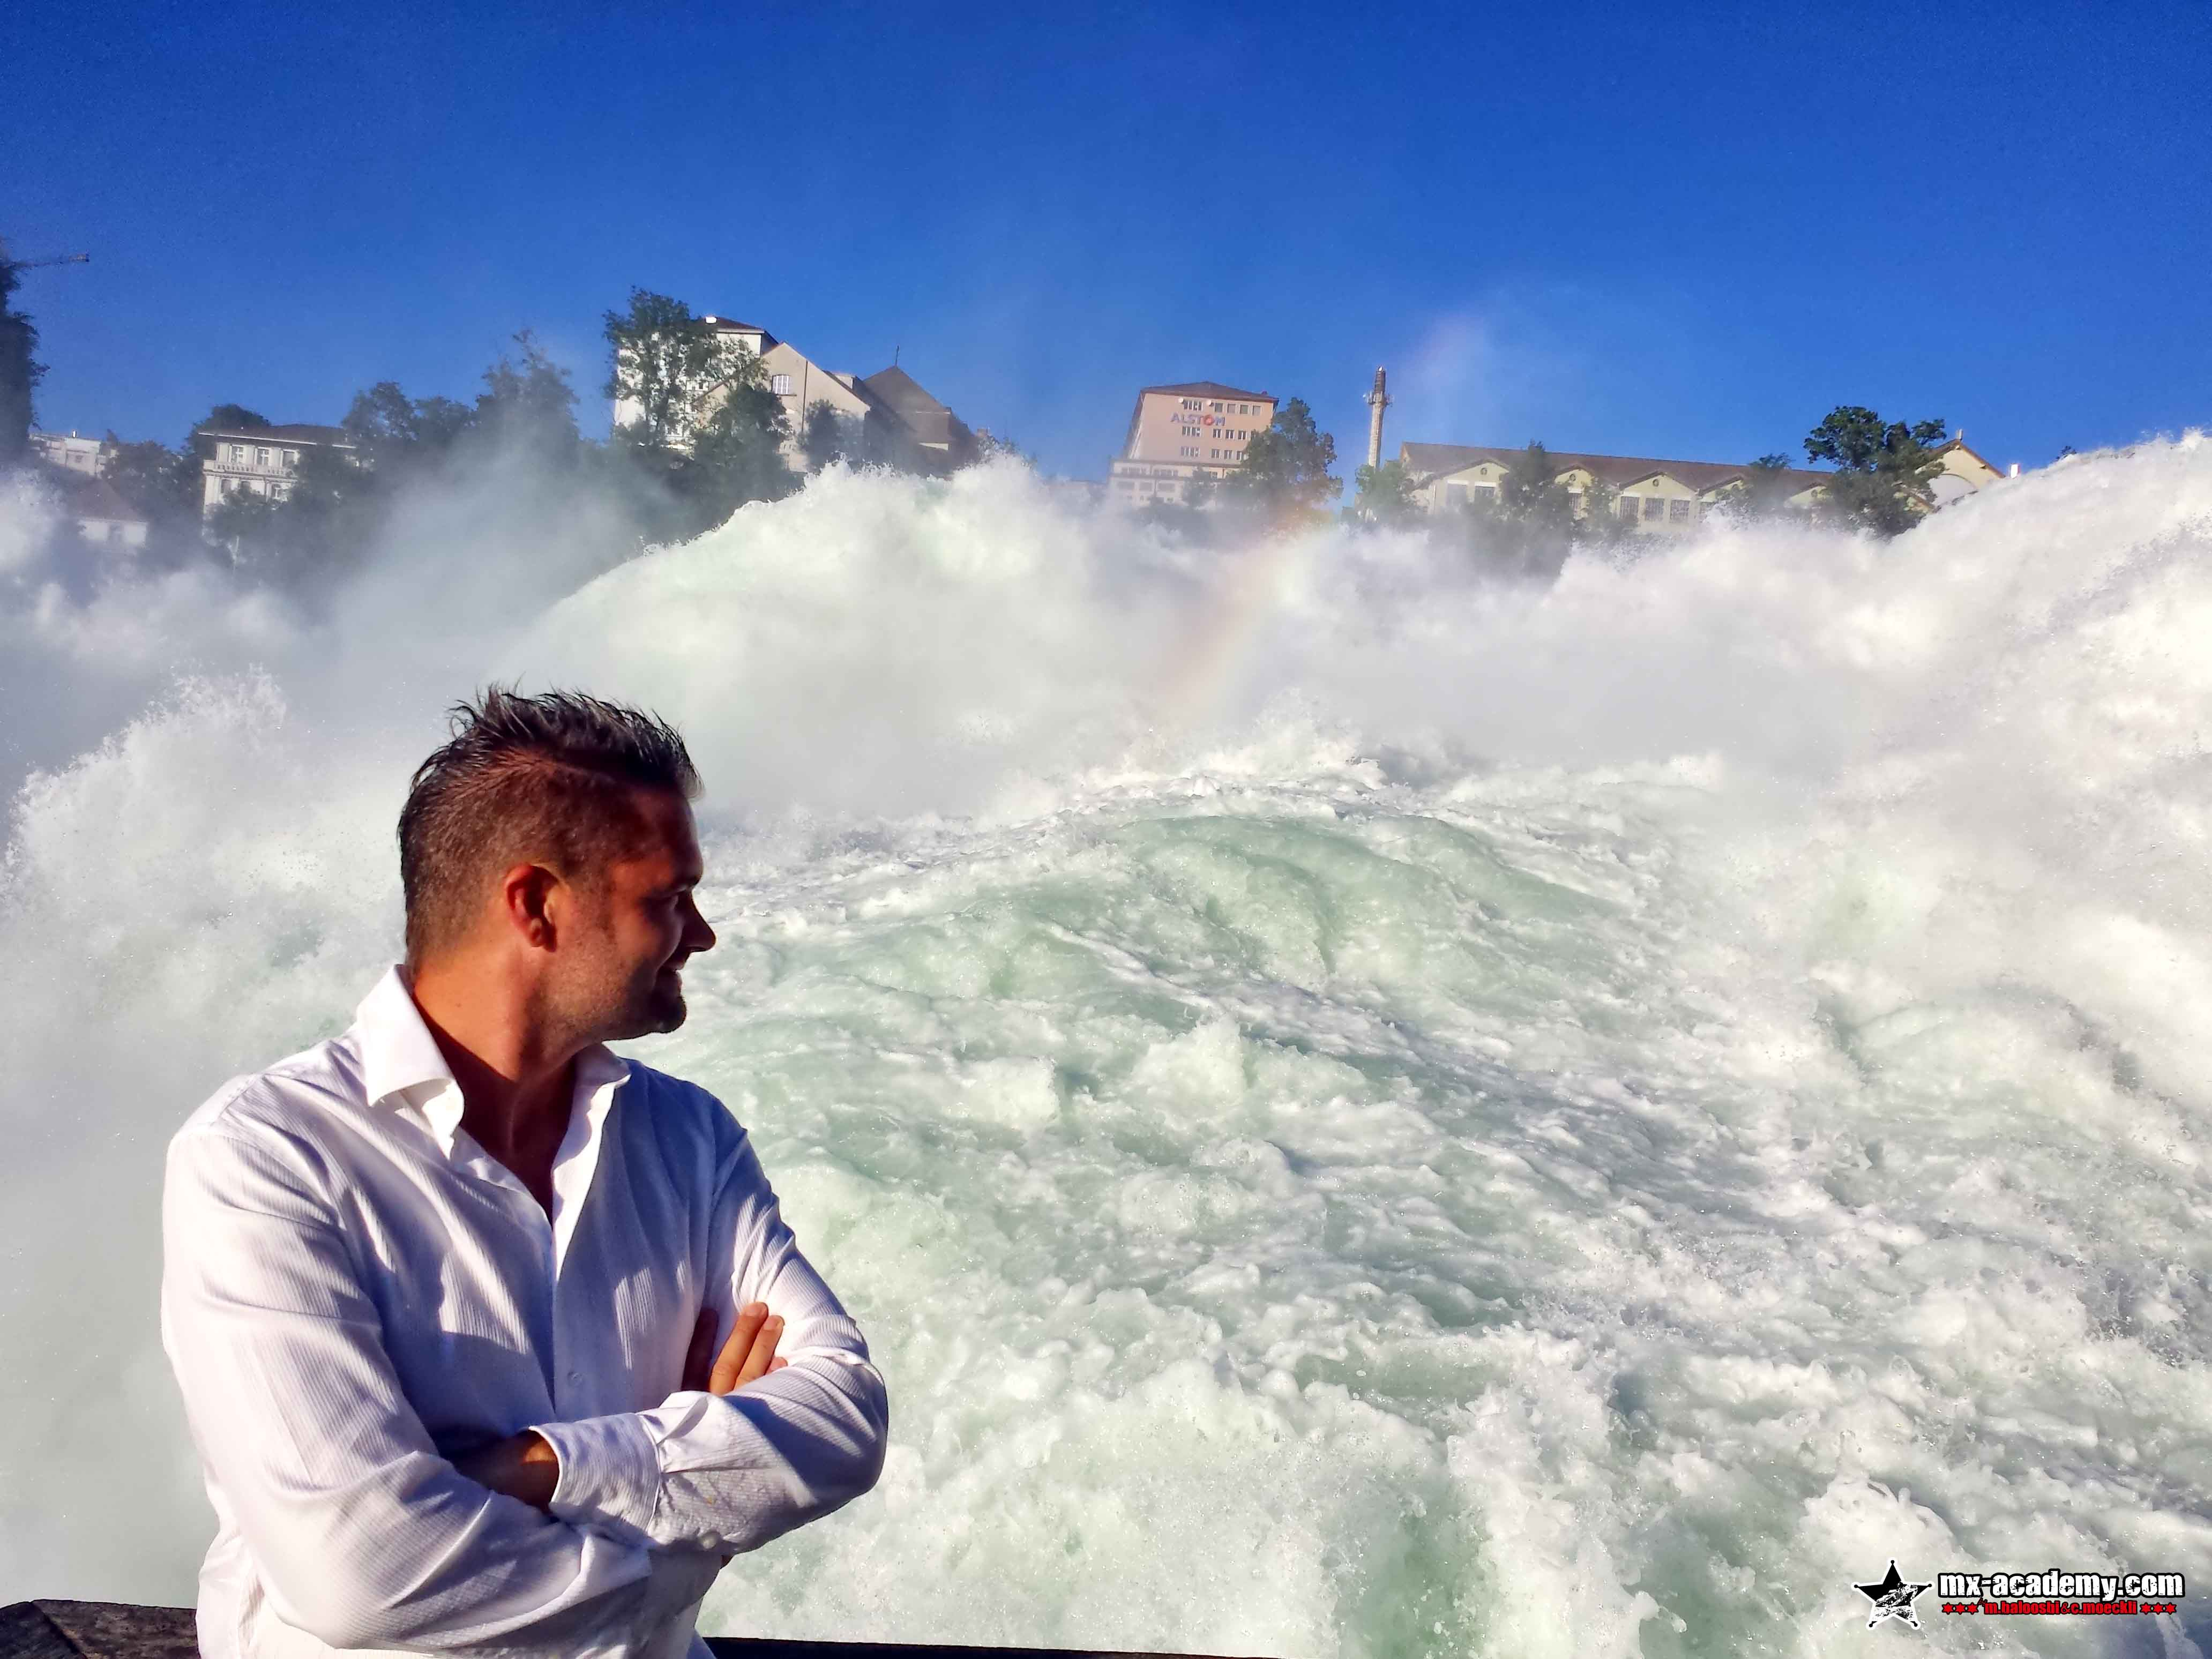 Best things to do in Switzerland - Rheinfall